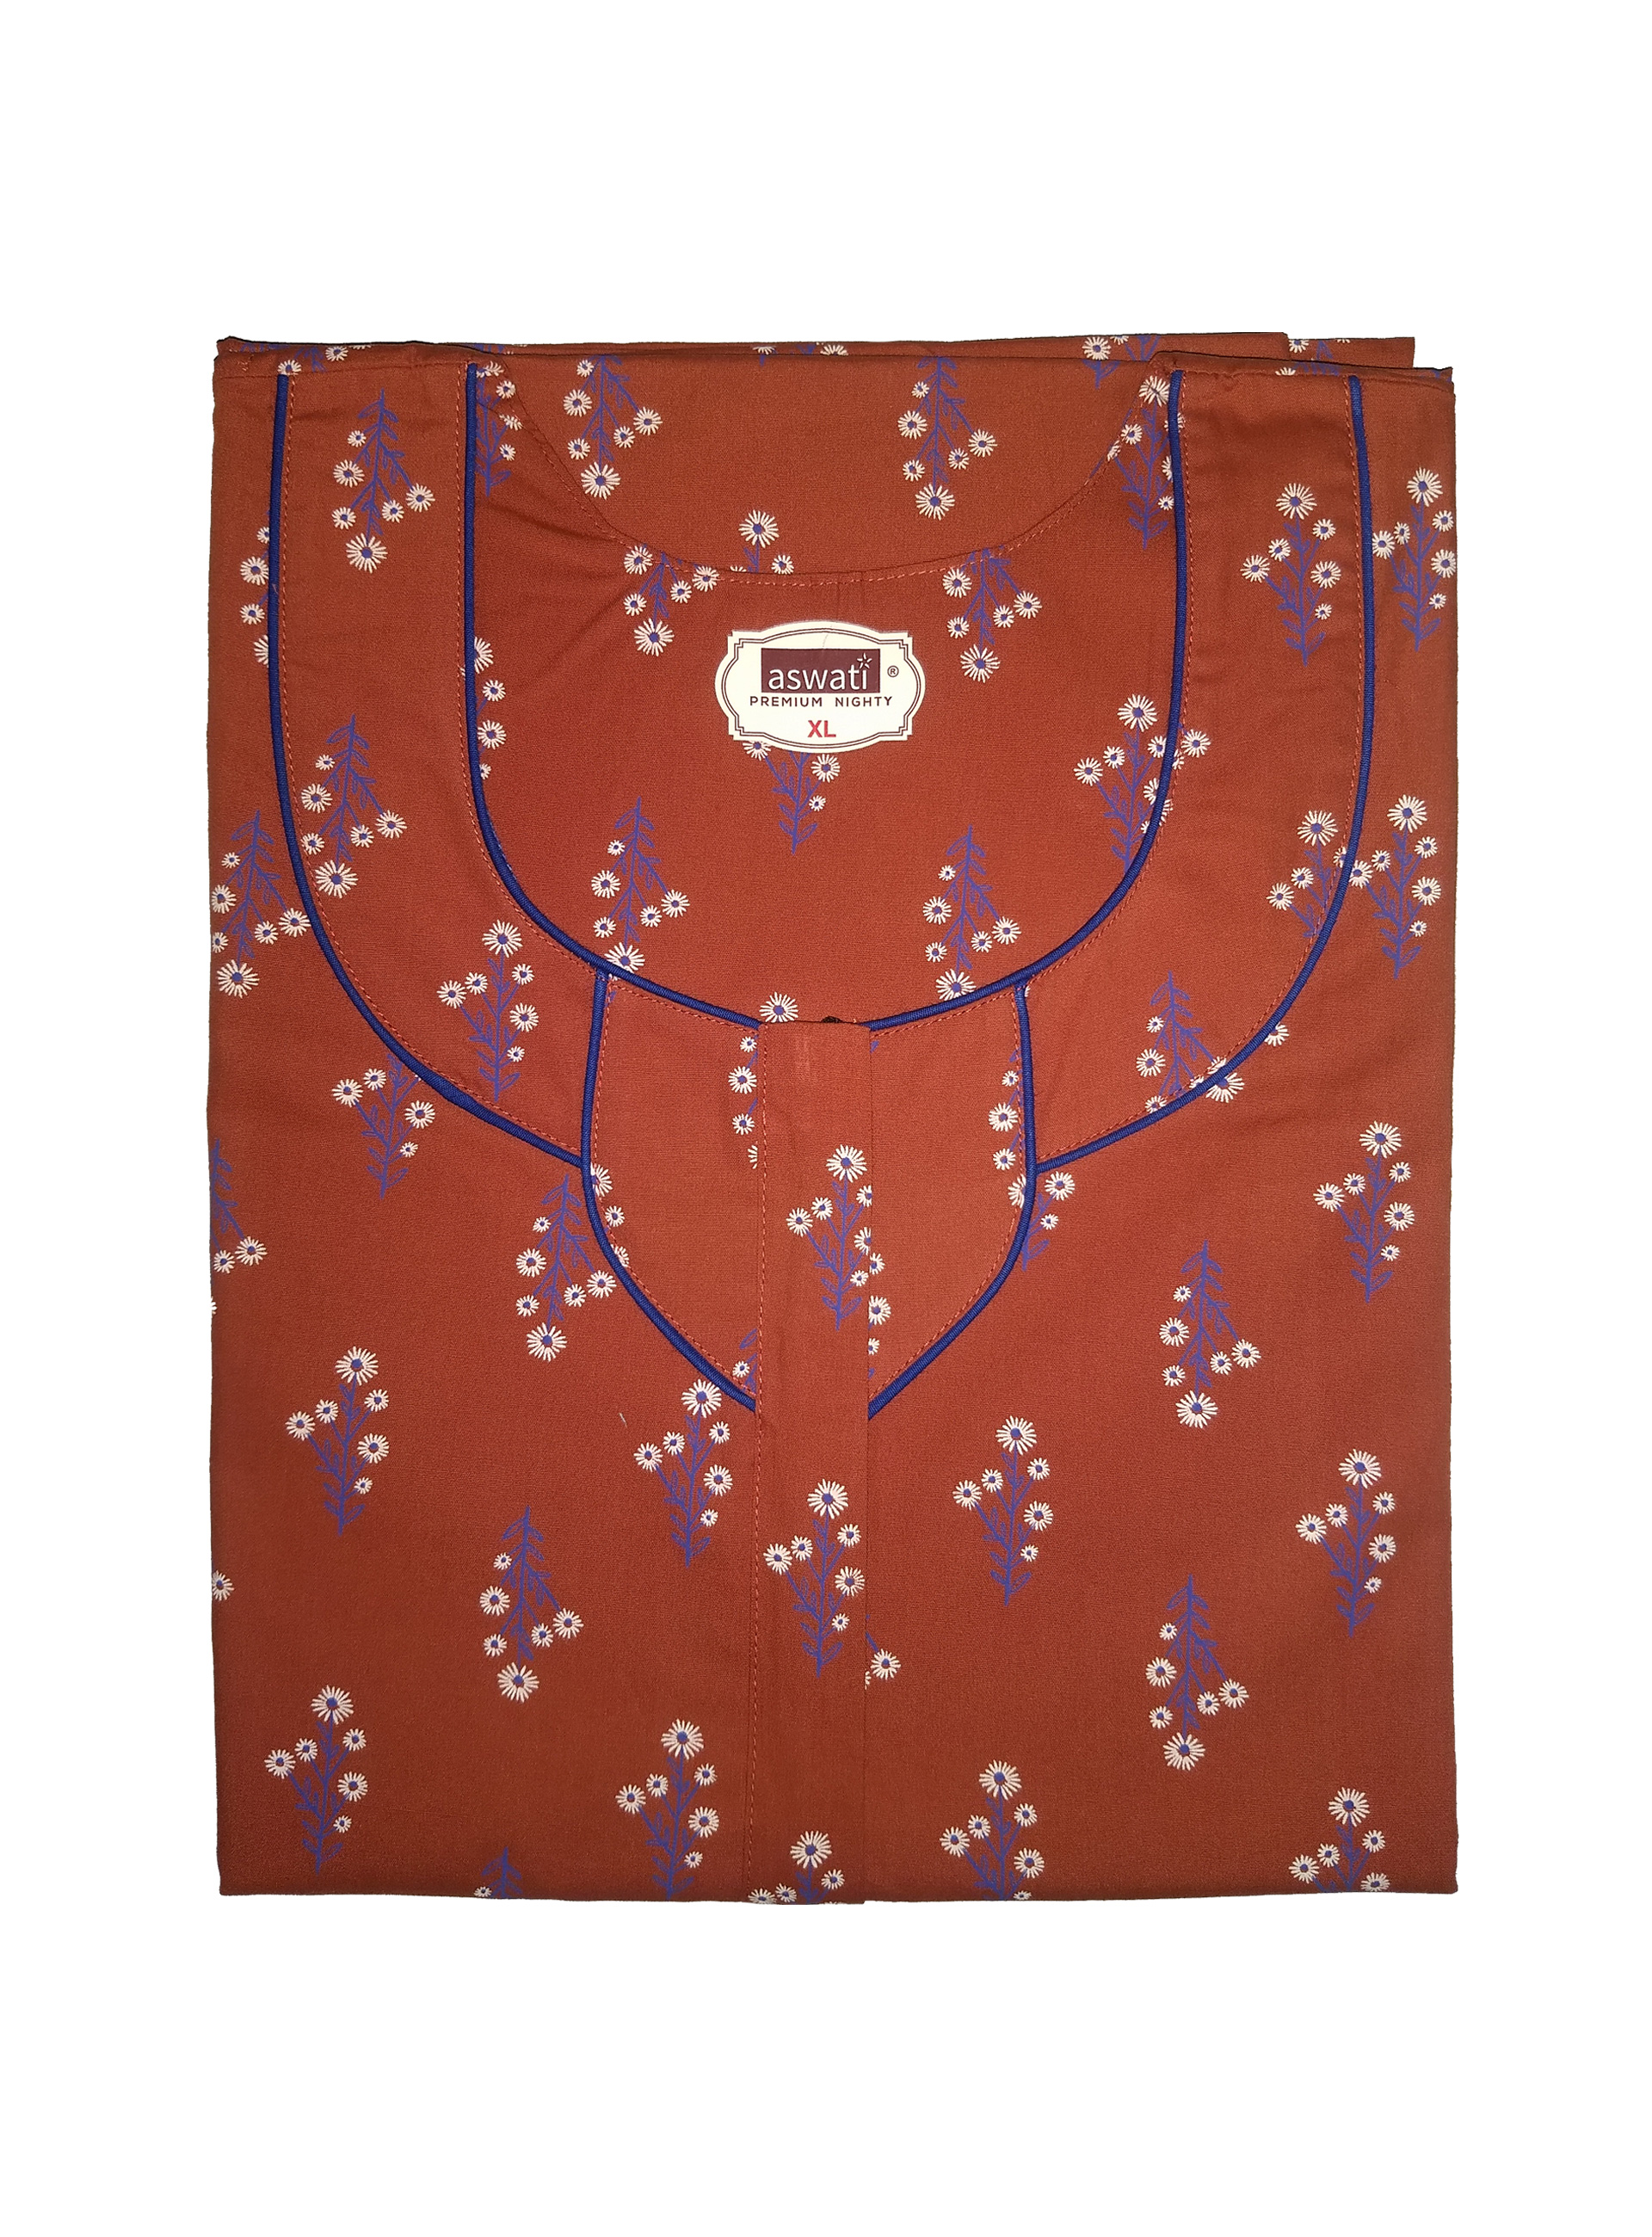 Premium Nighty (XL) - Brown With Floral Prints